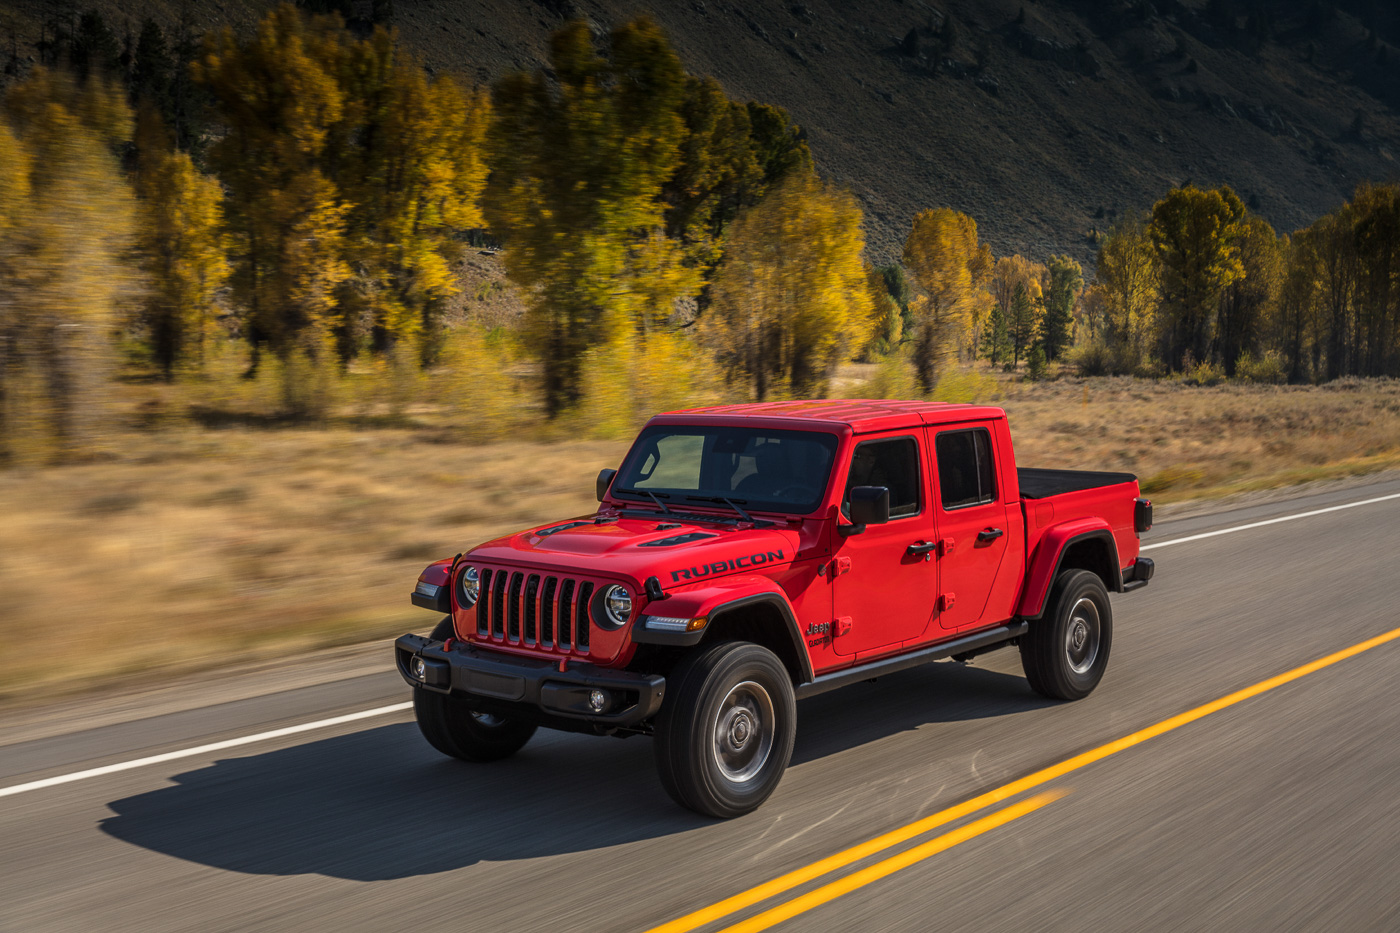 Jeep-Gladiator-Rubicon-8.jpg